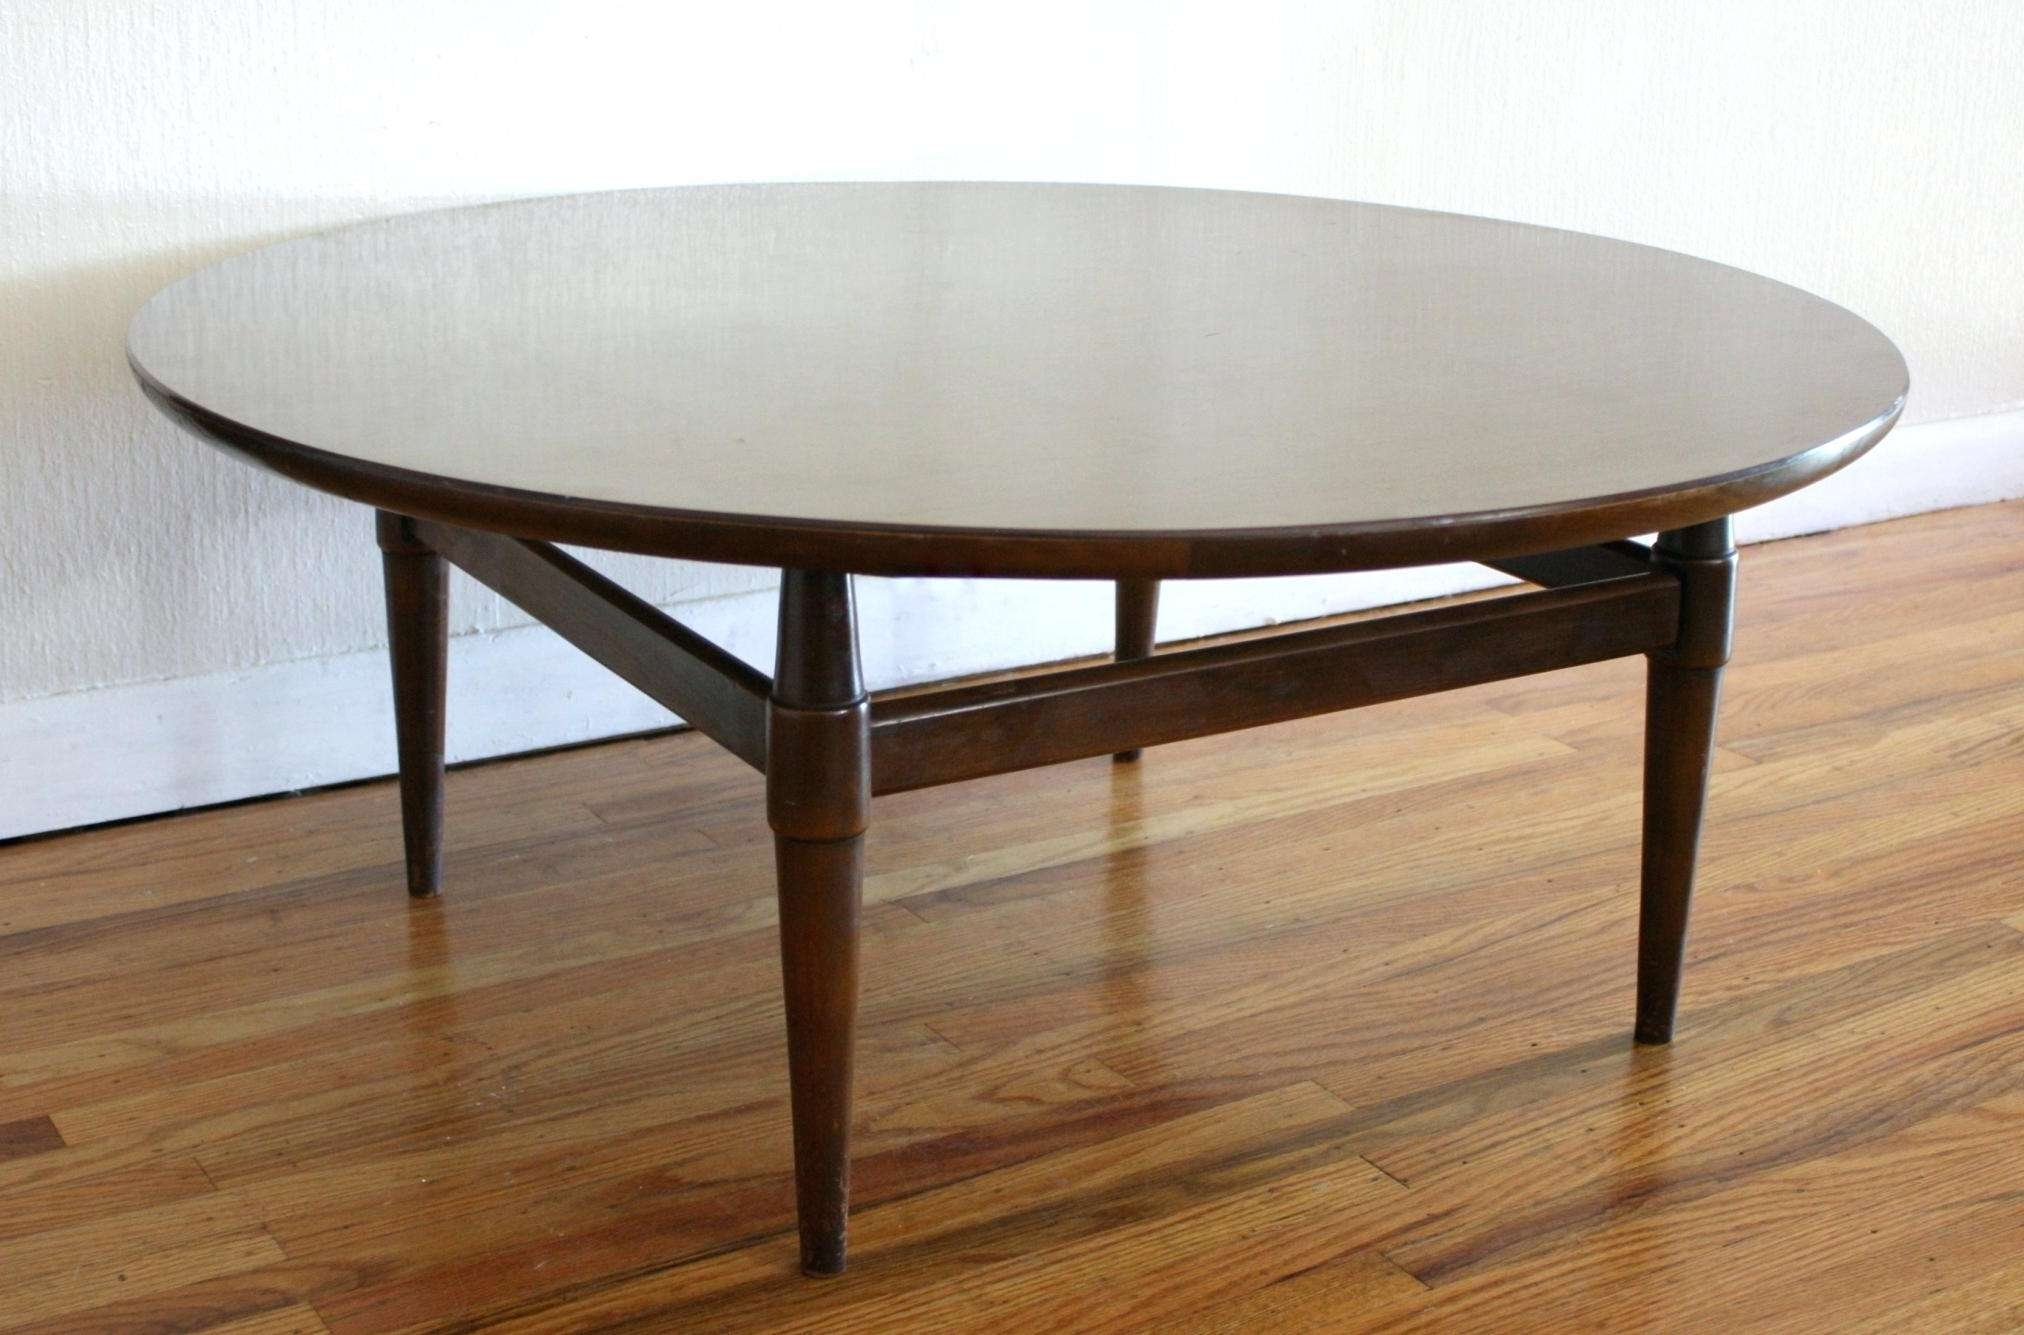 Latest Coffee Tables With Rounded Corners Inside Lightfoundation.co Page 44: Coffee Table Rounded Corners (View 7 of 20)